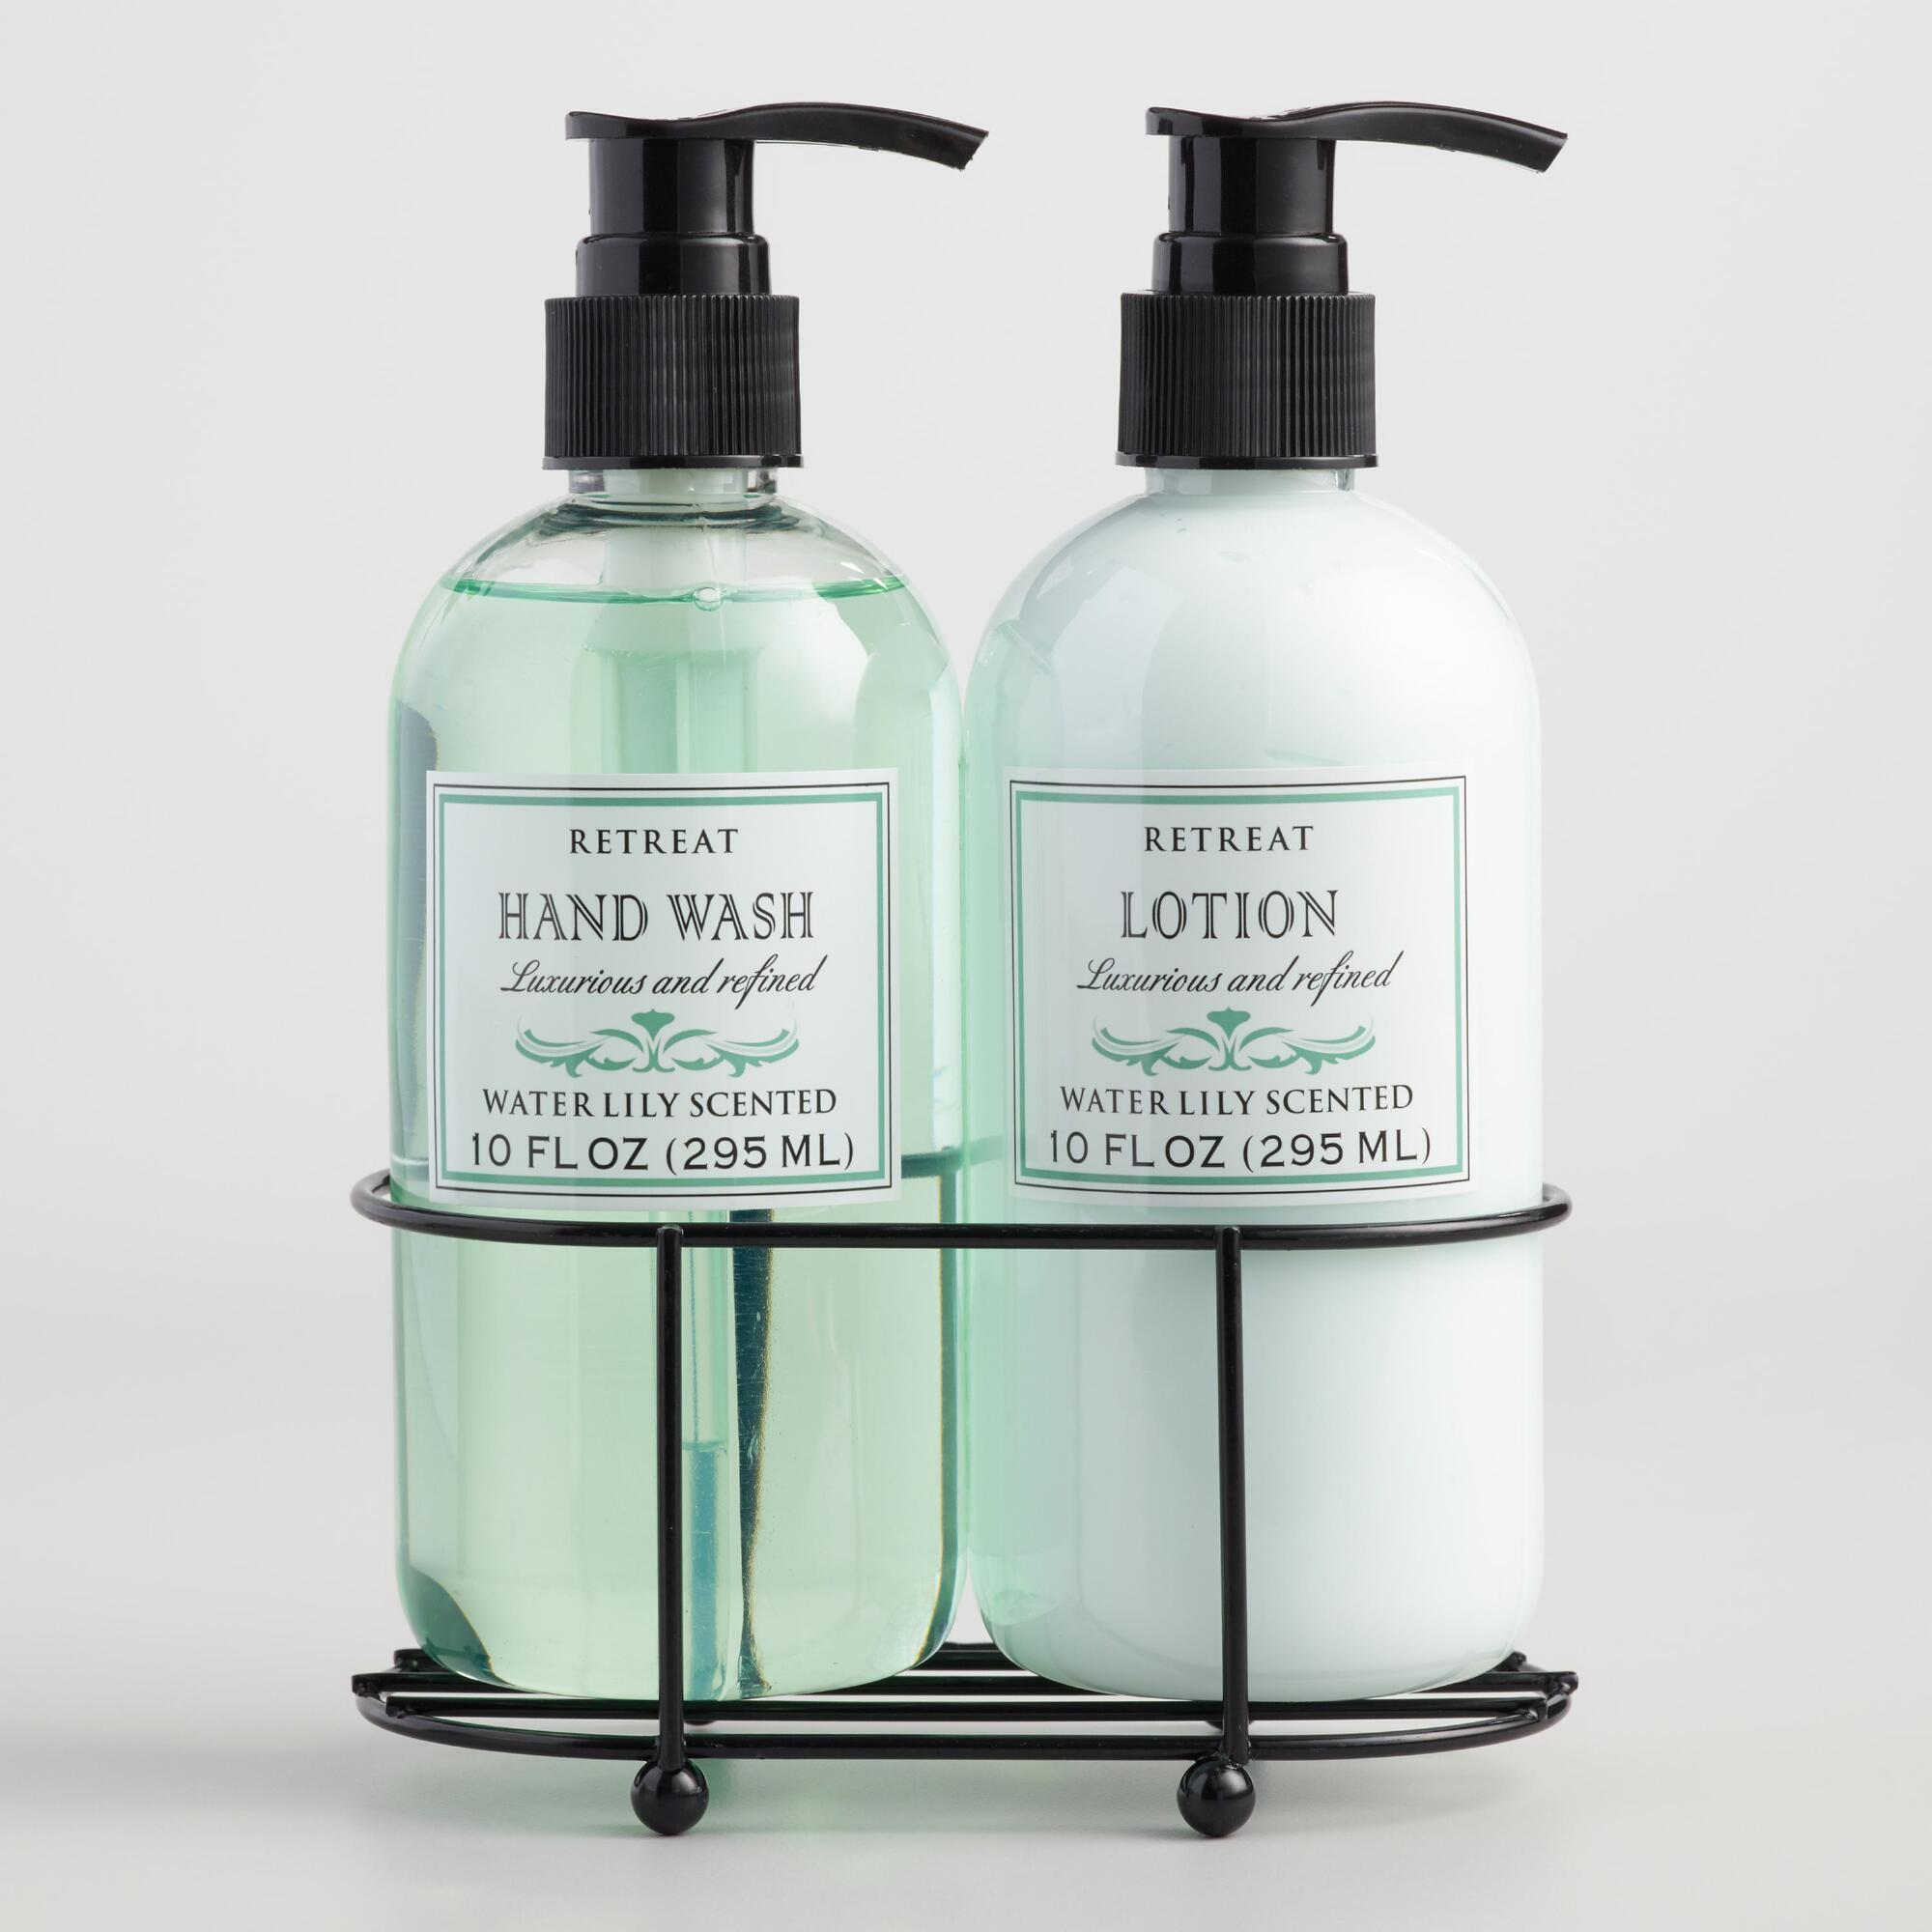 Retreat water lily liquid soap and lotion caddy world market Hand wash and lotion caddy